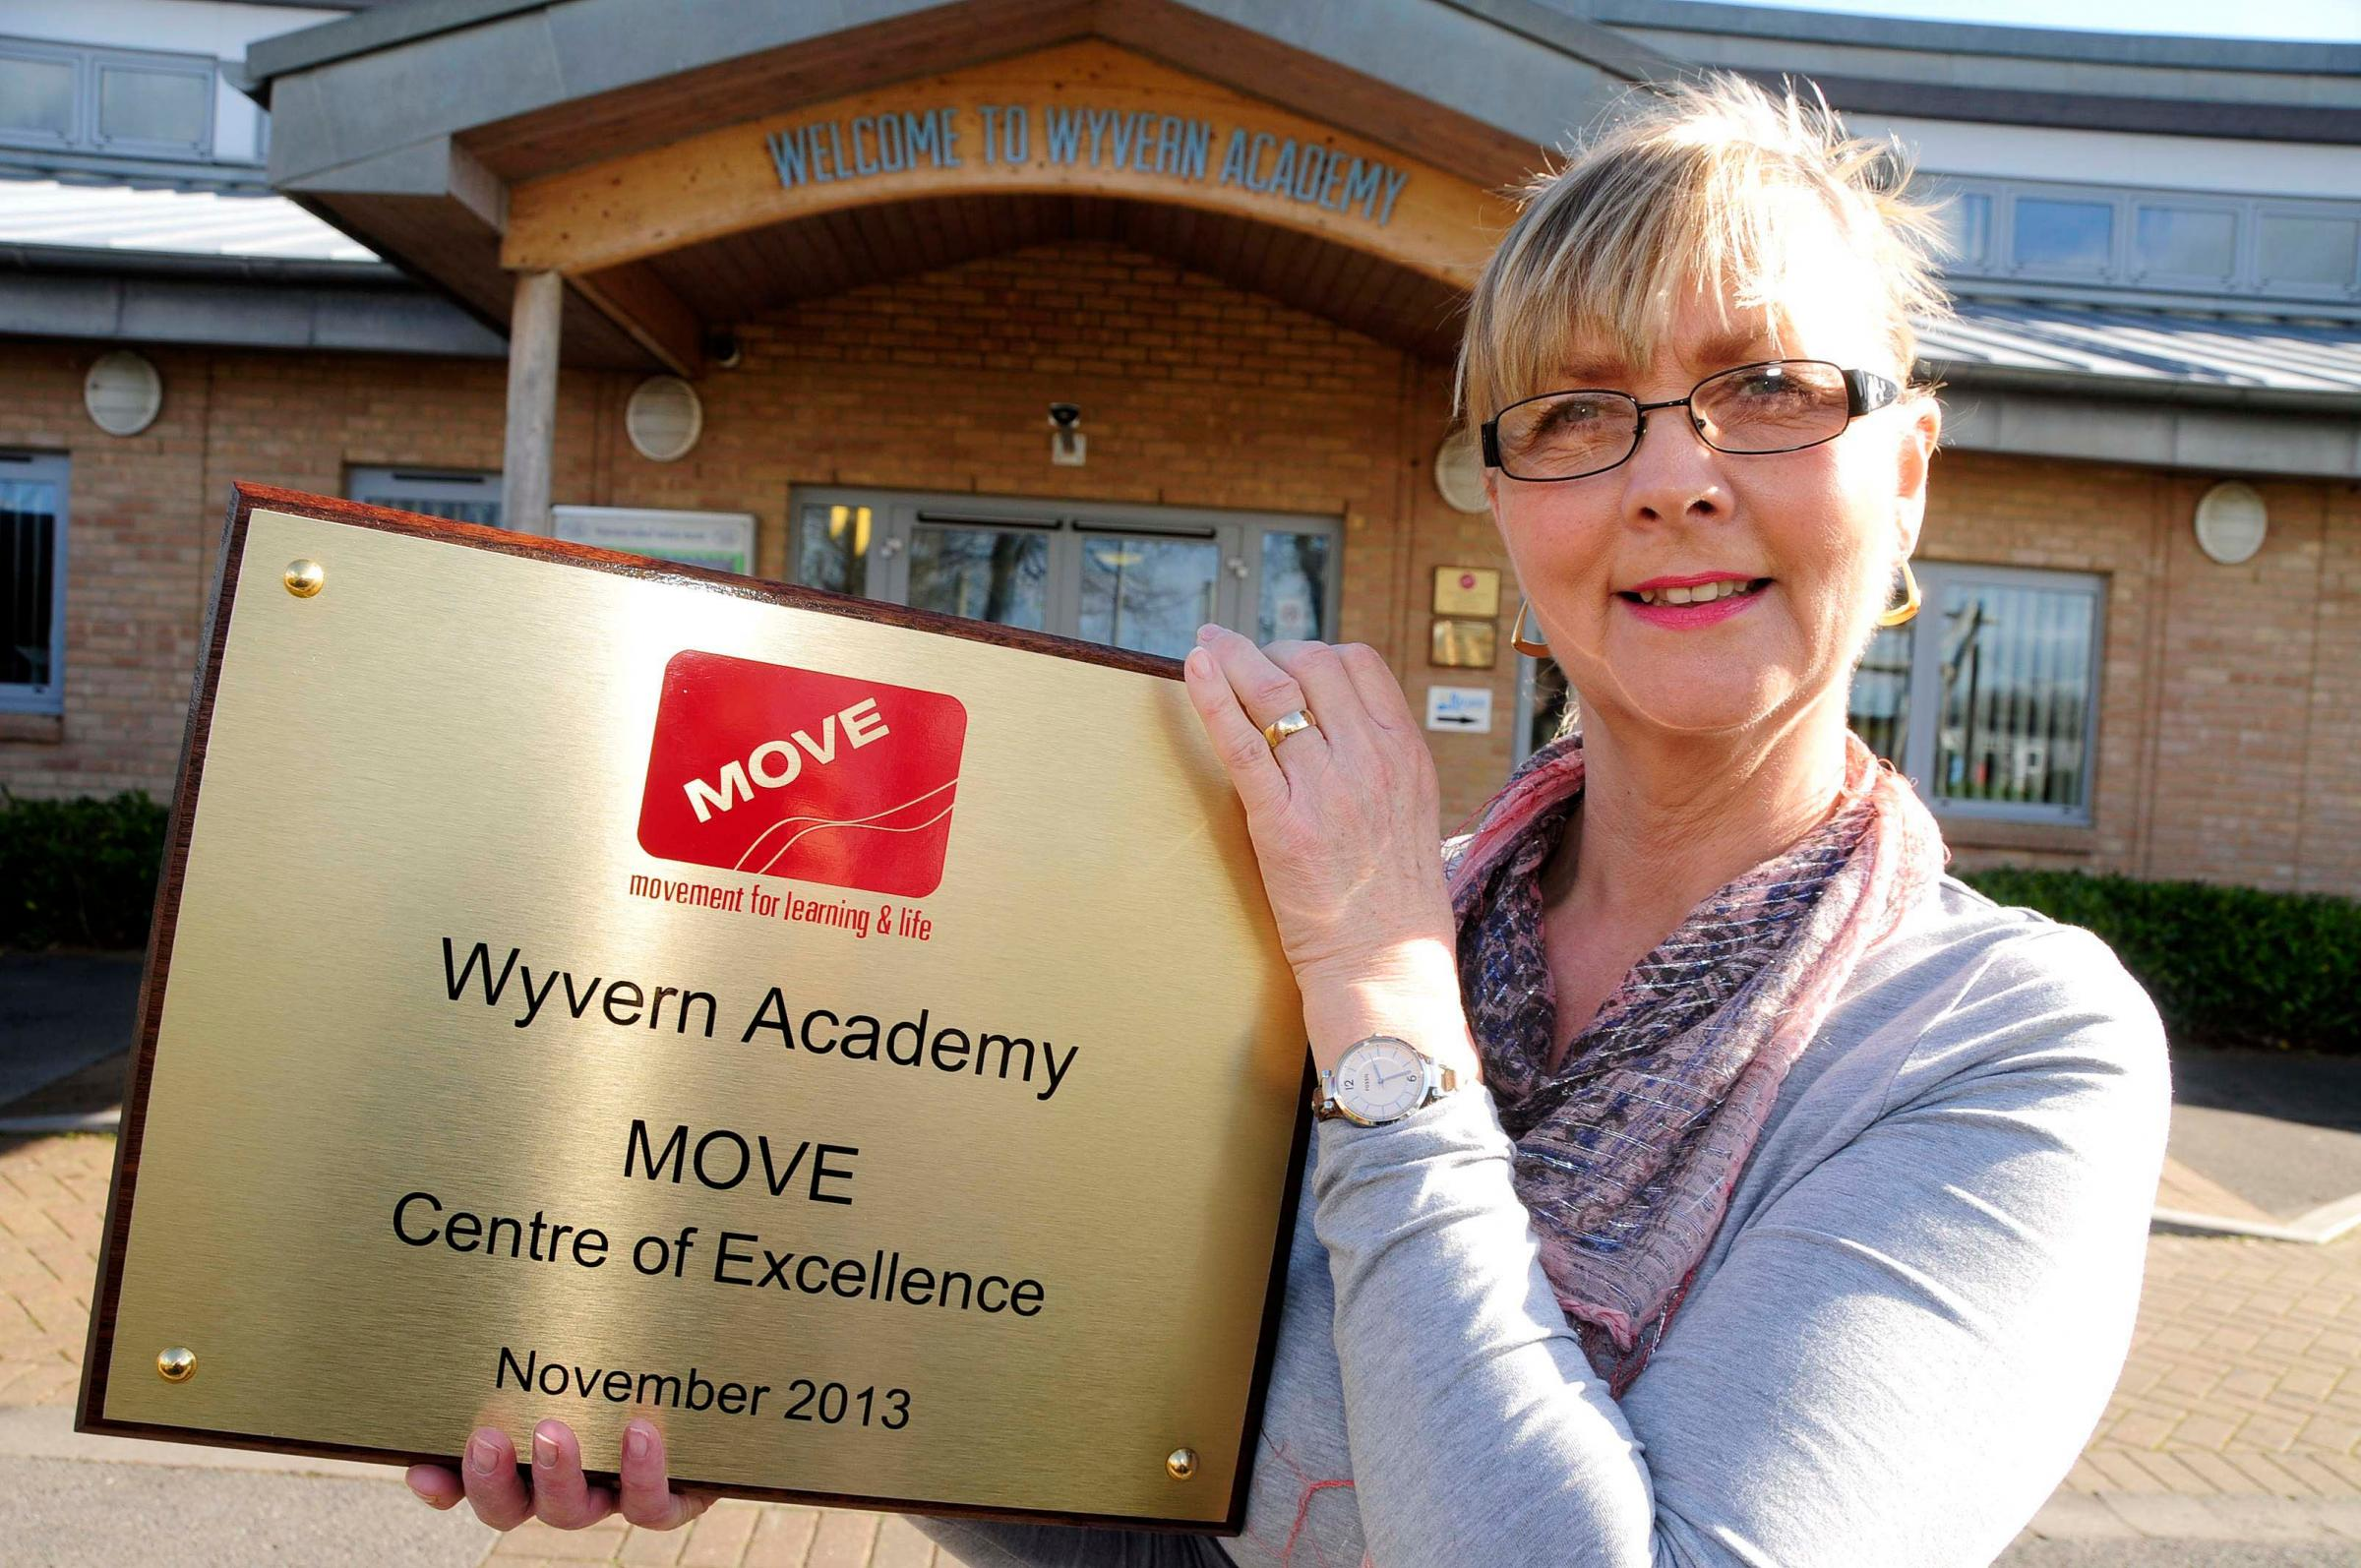 Weymouth school awarded MOVE accreditation